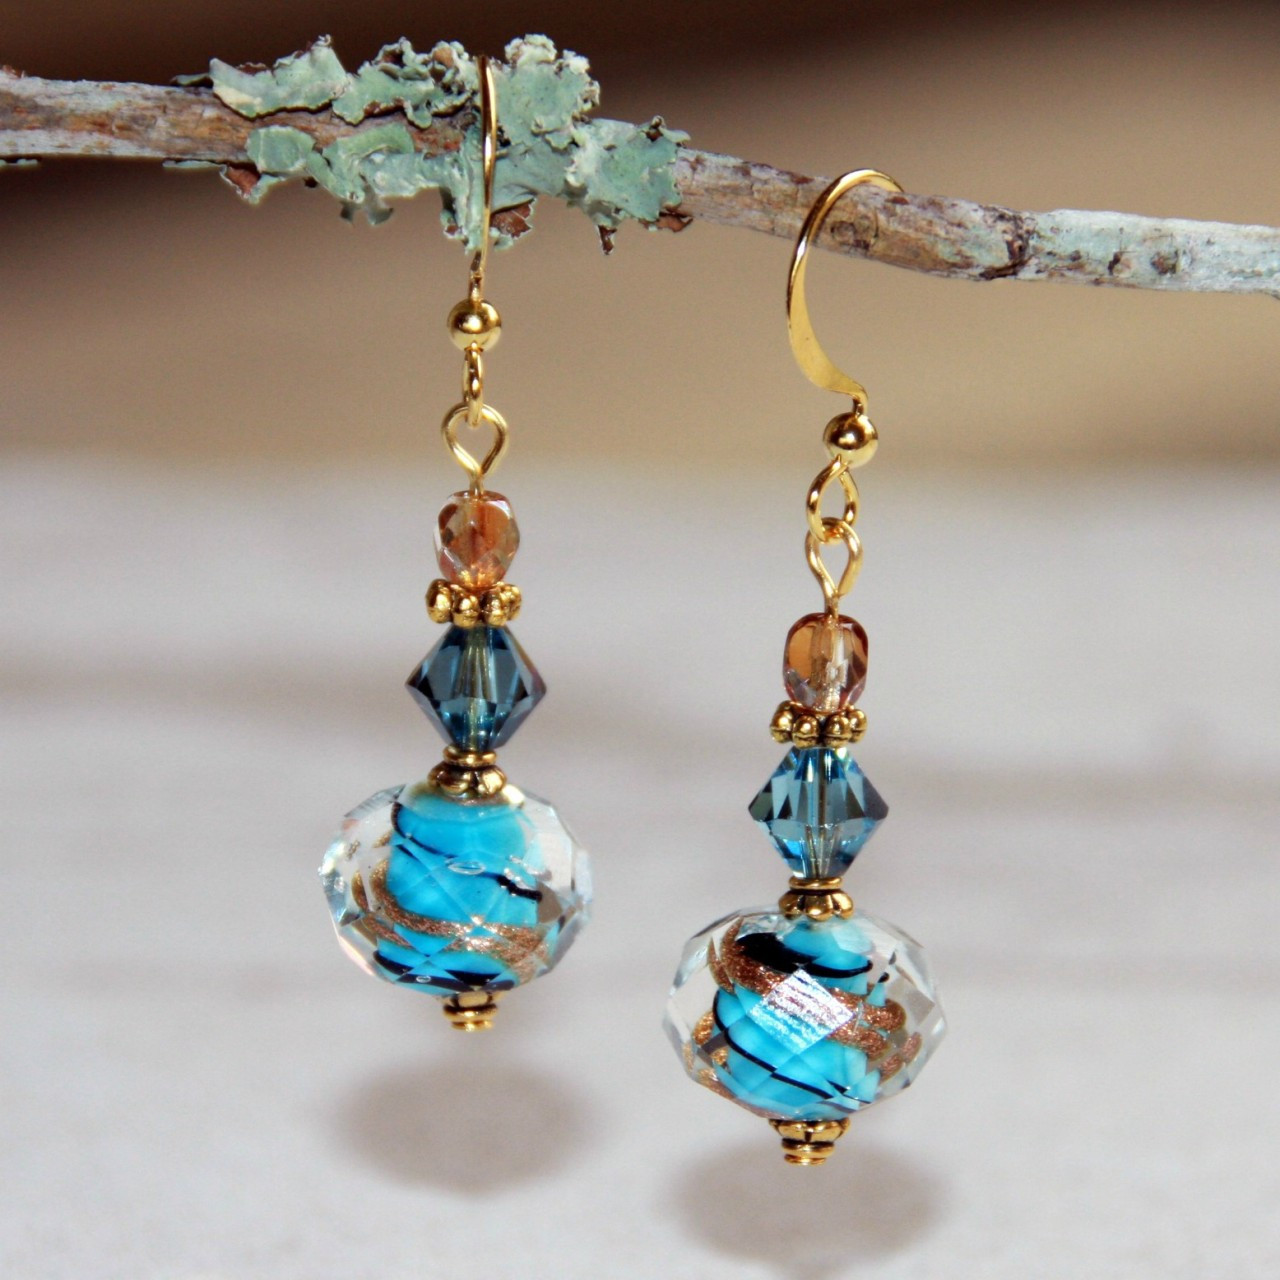 FER-252 Lampwork Crystal Beaded Earrings